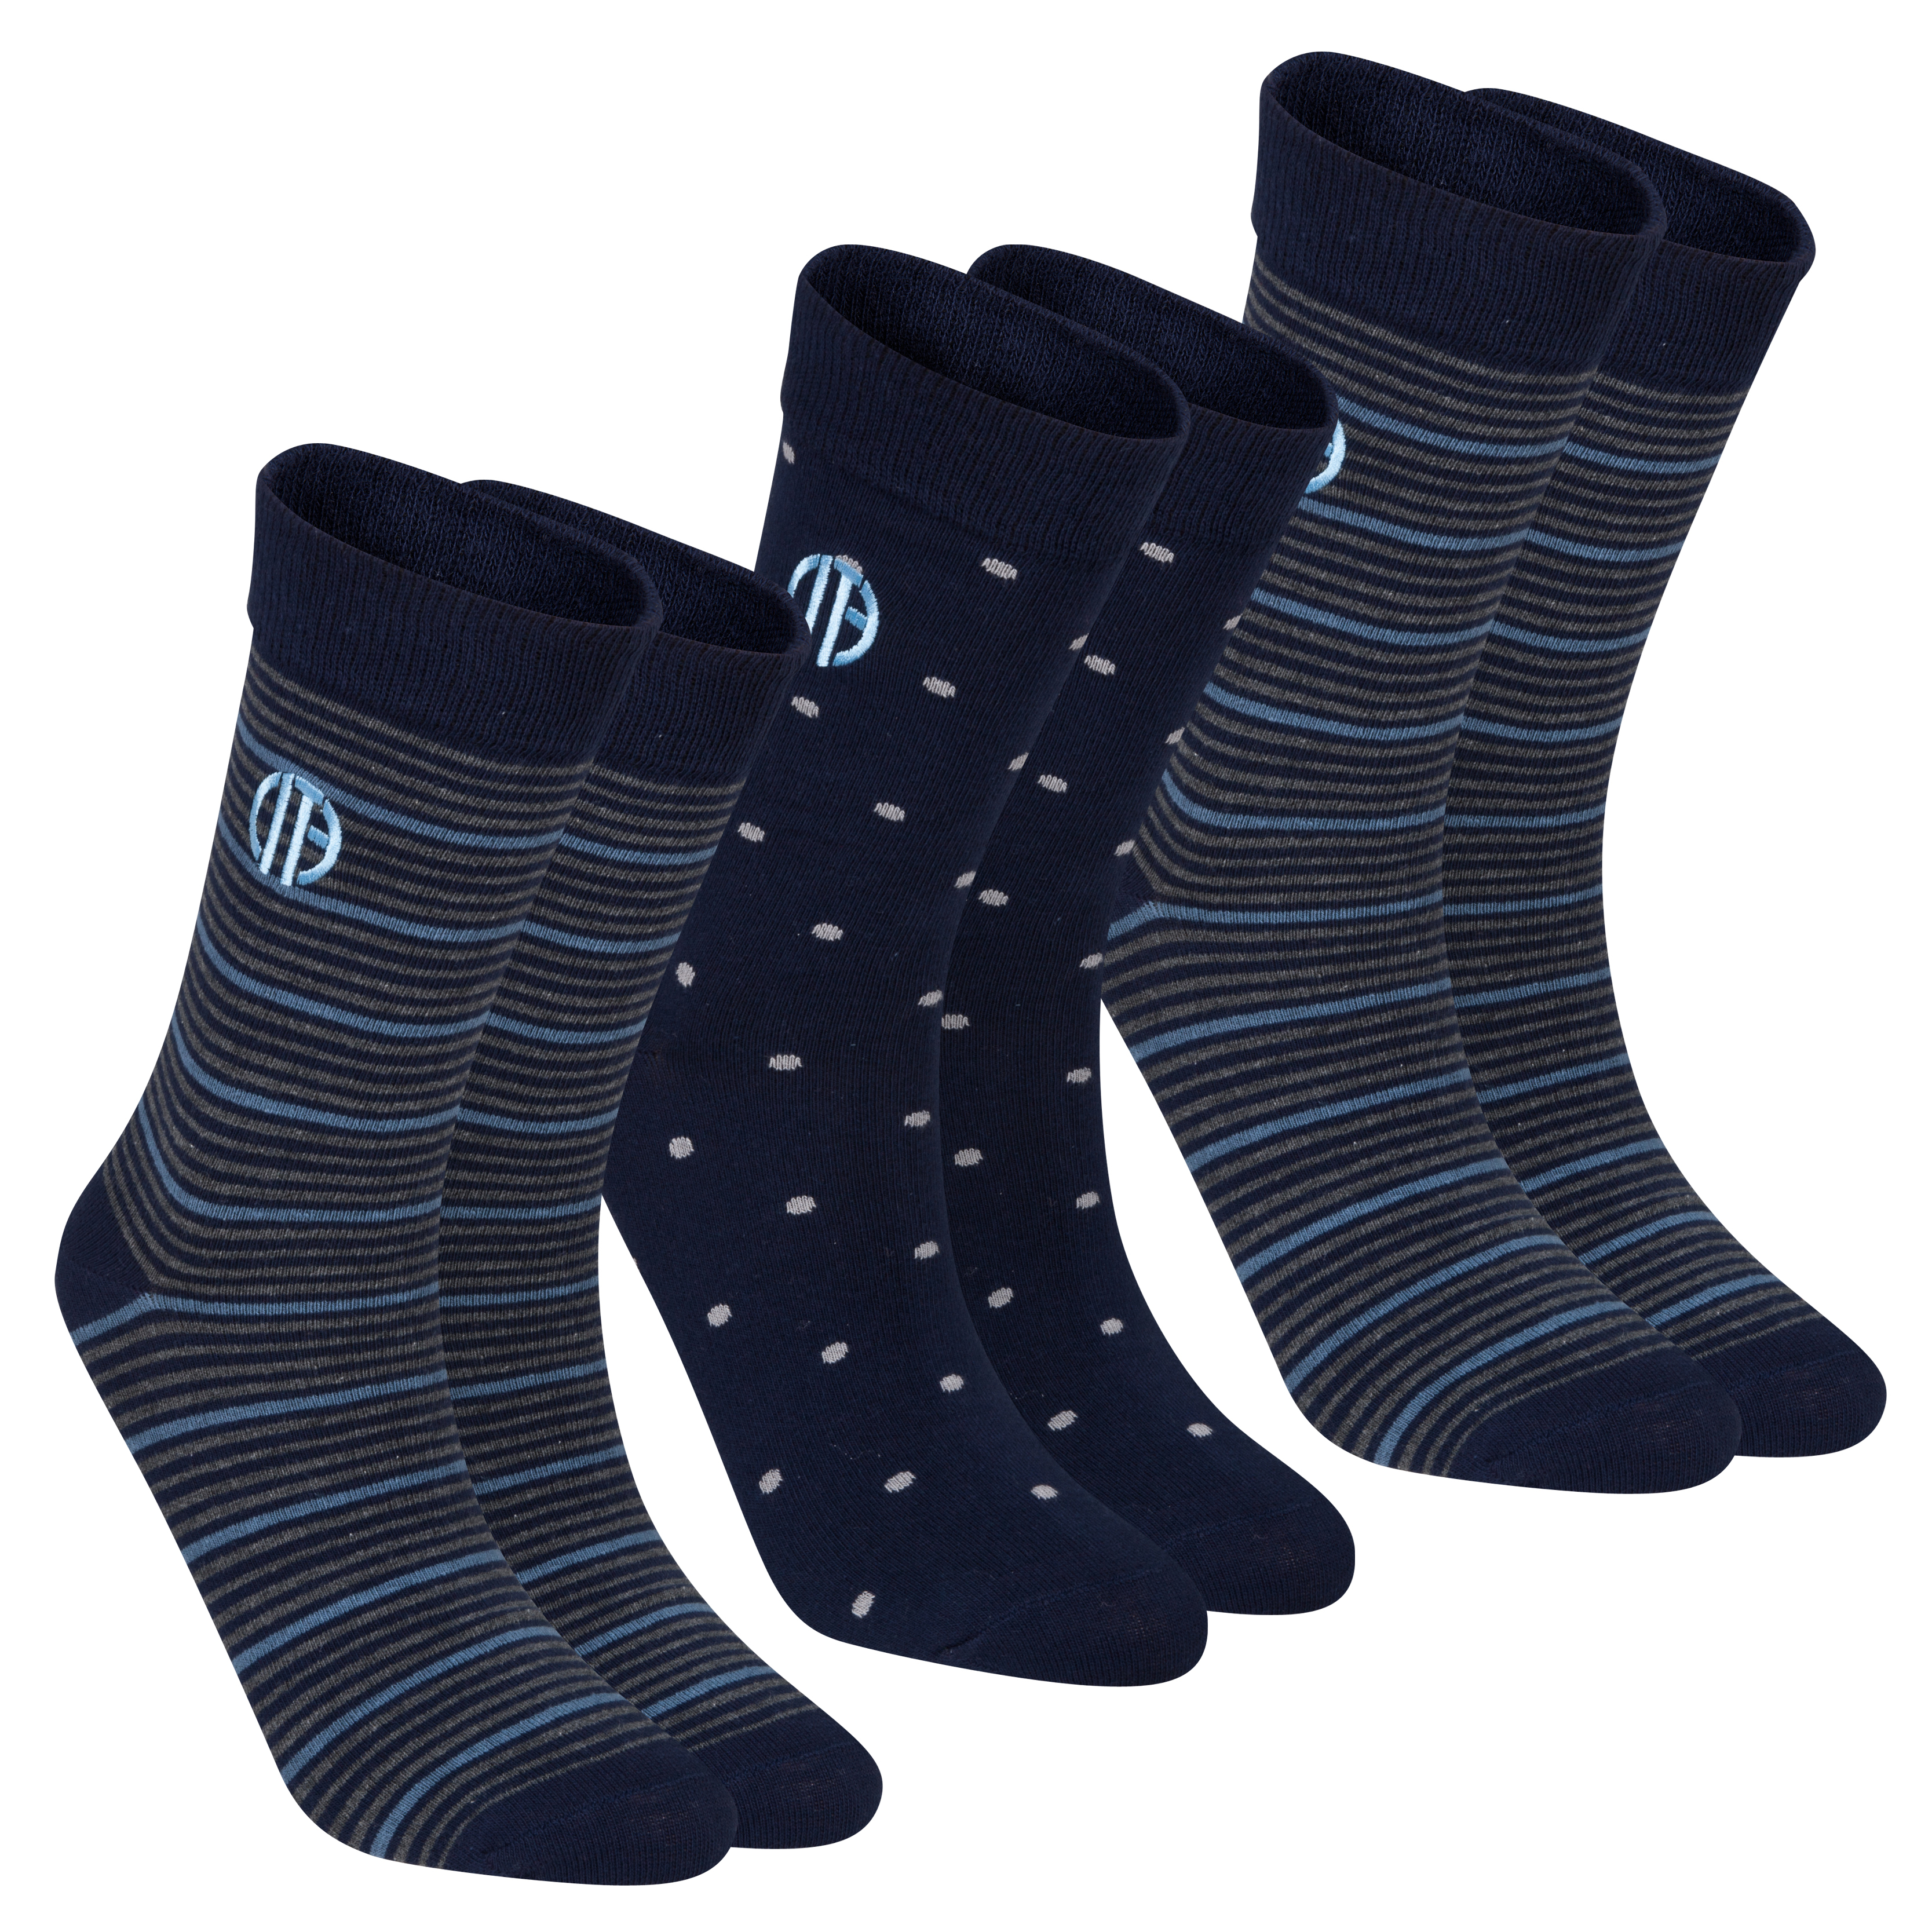 Manchester City Sock Giftbox - Mens Navy